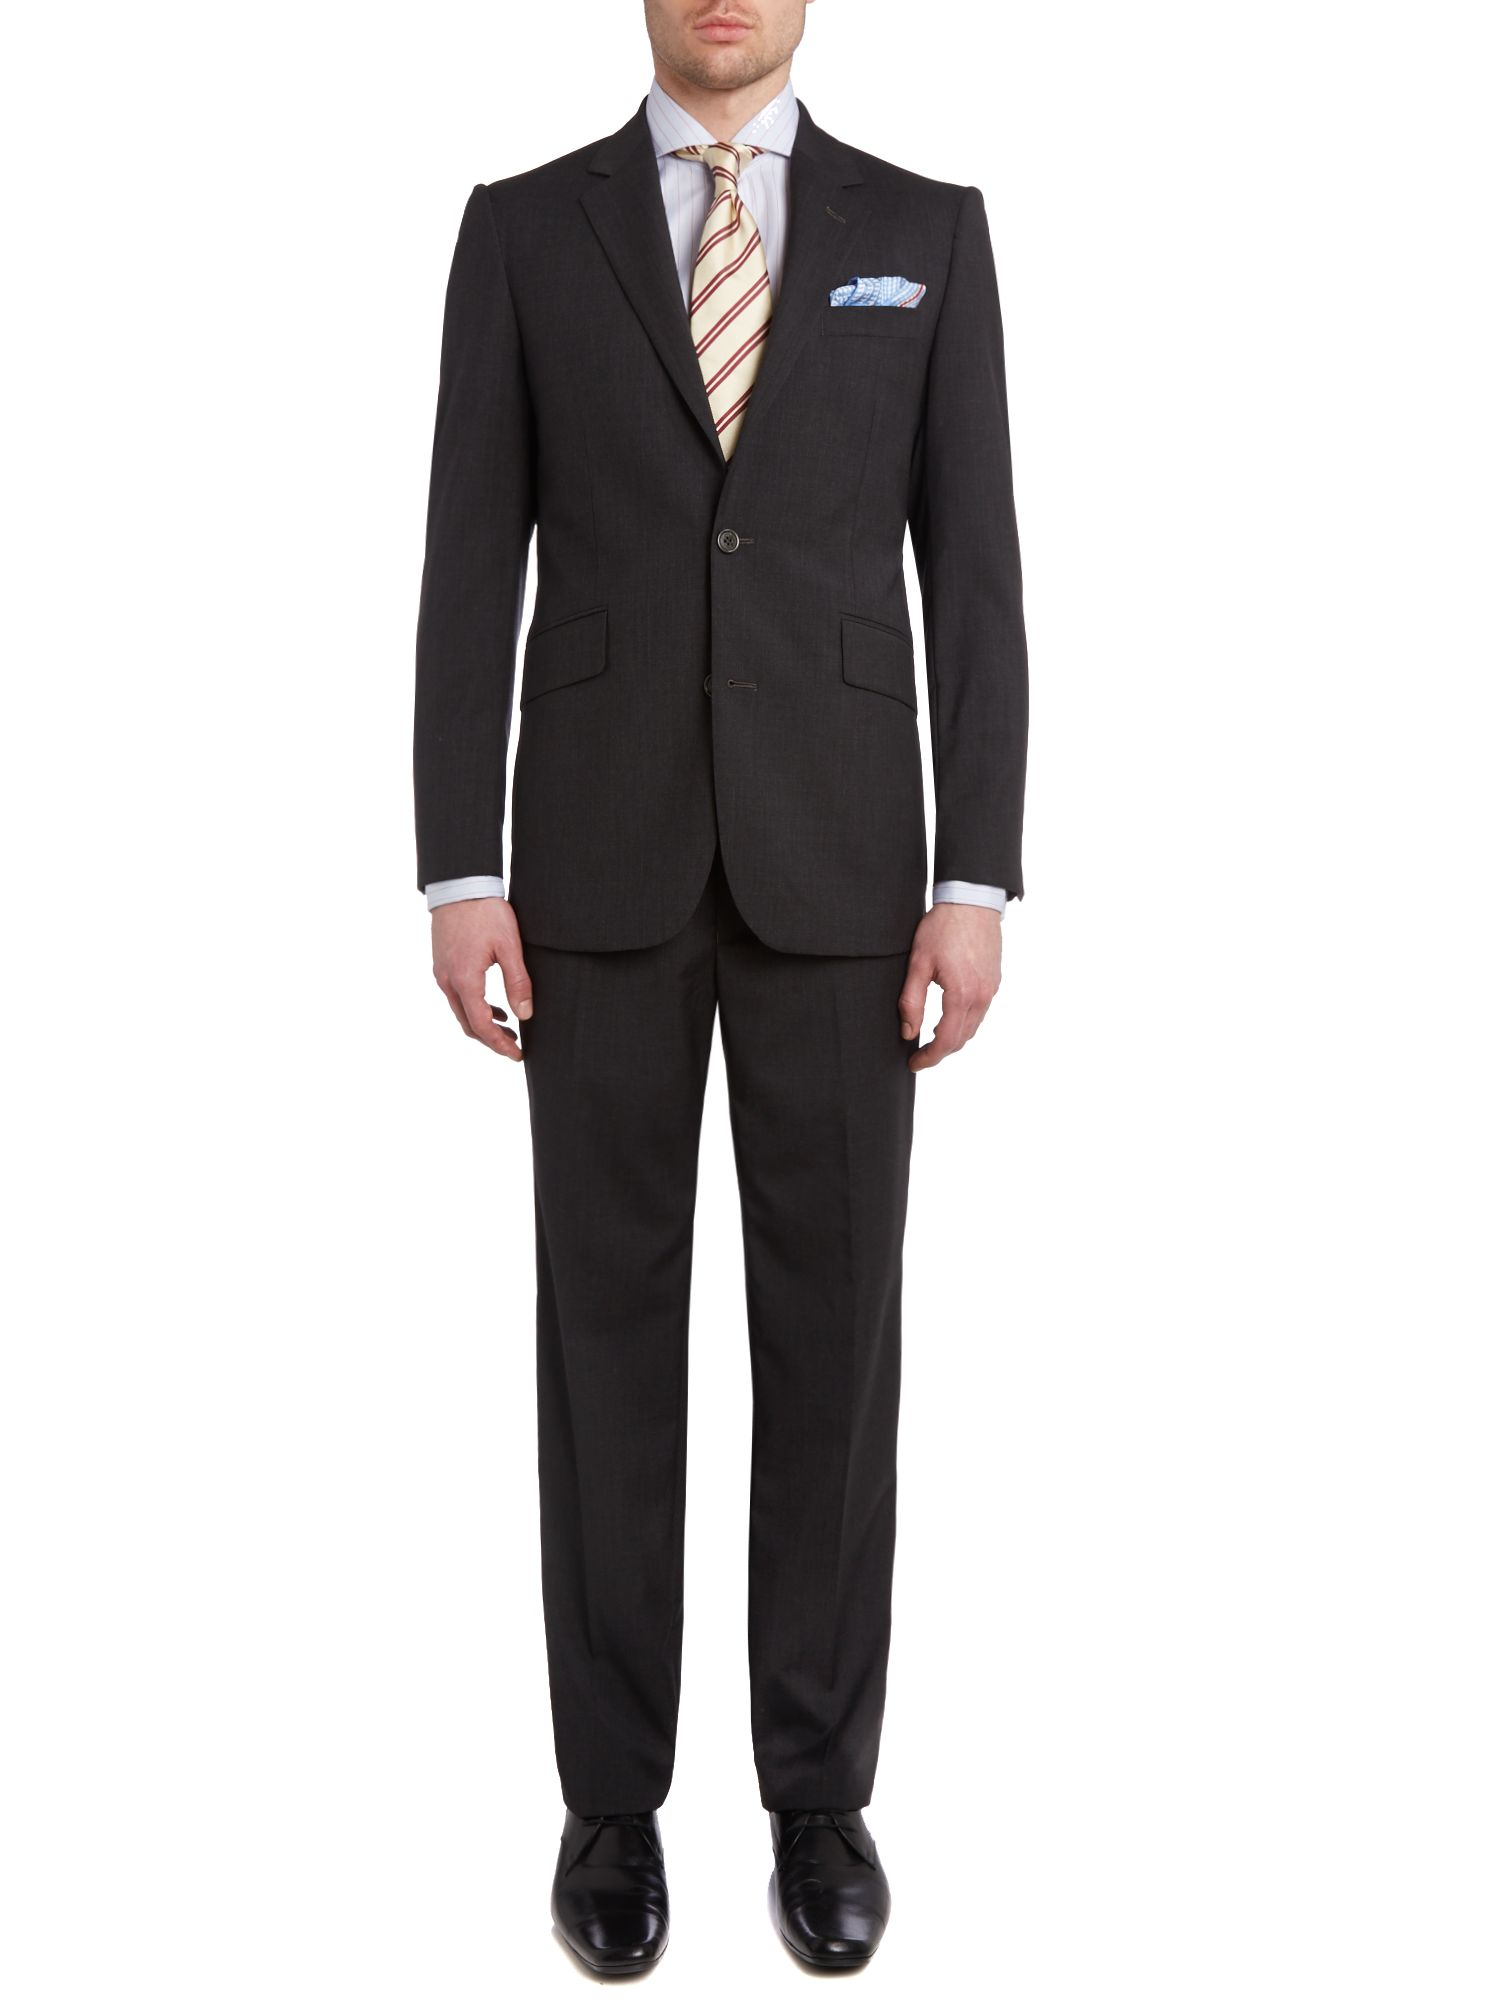 Kensington fit plainweave suit